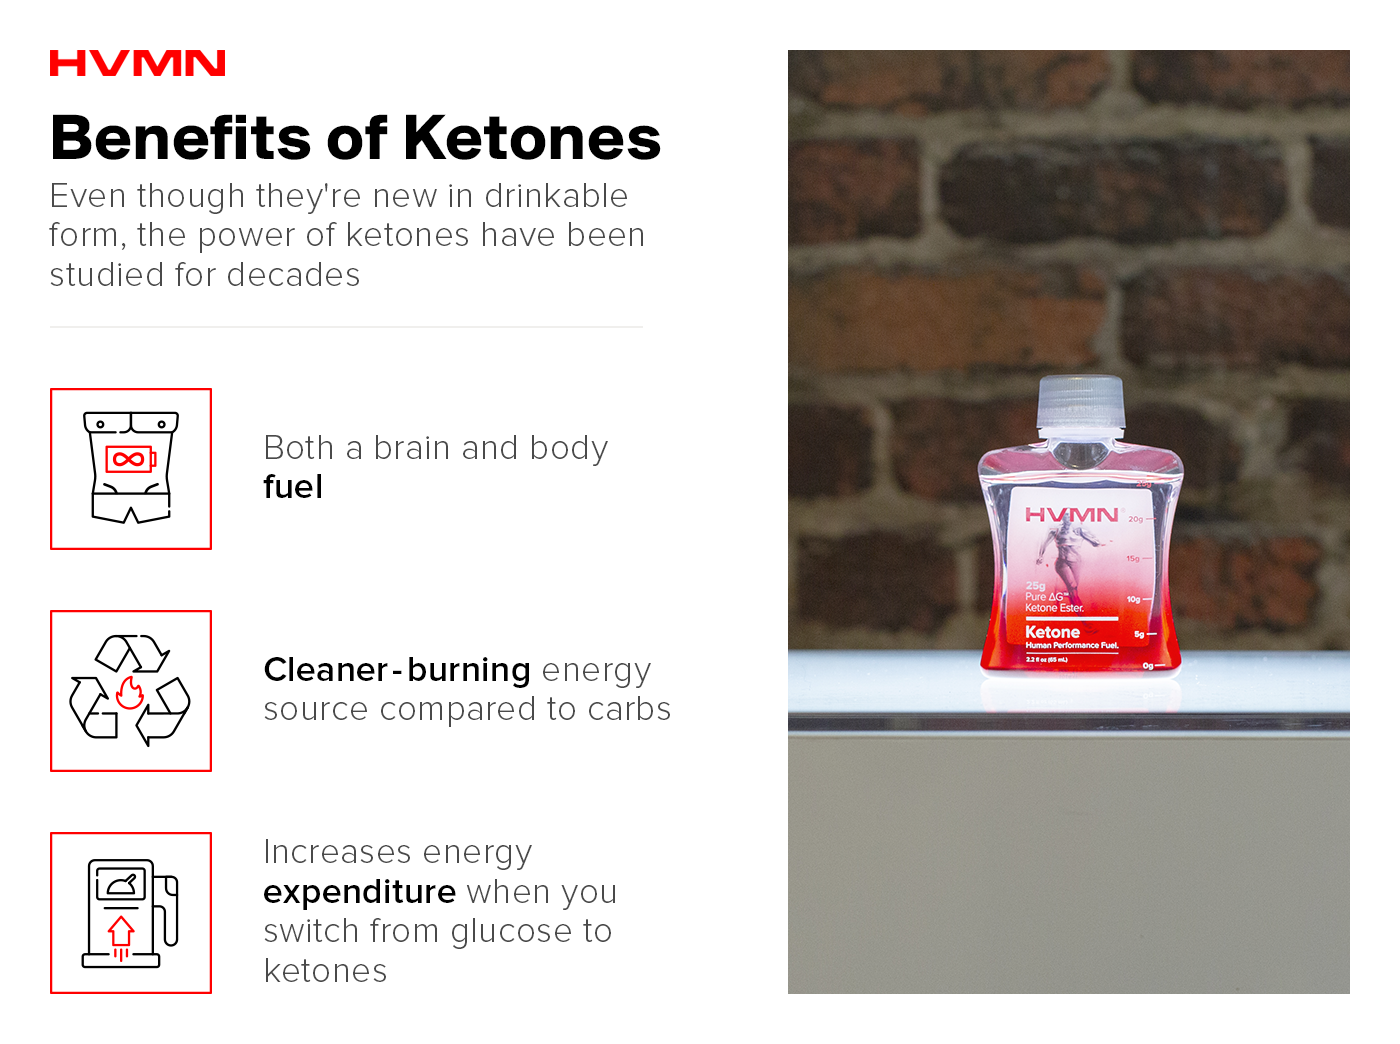 An image of H.V.M.N. Ketone Ester, with icons of a battery, a flame, and a gas meter, showing the benefits of ketones